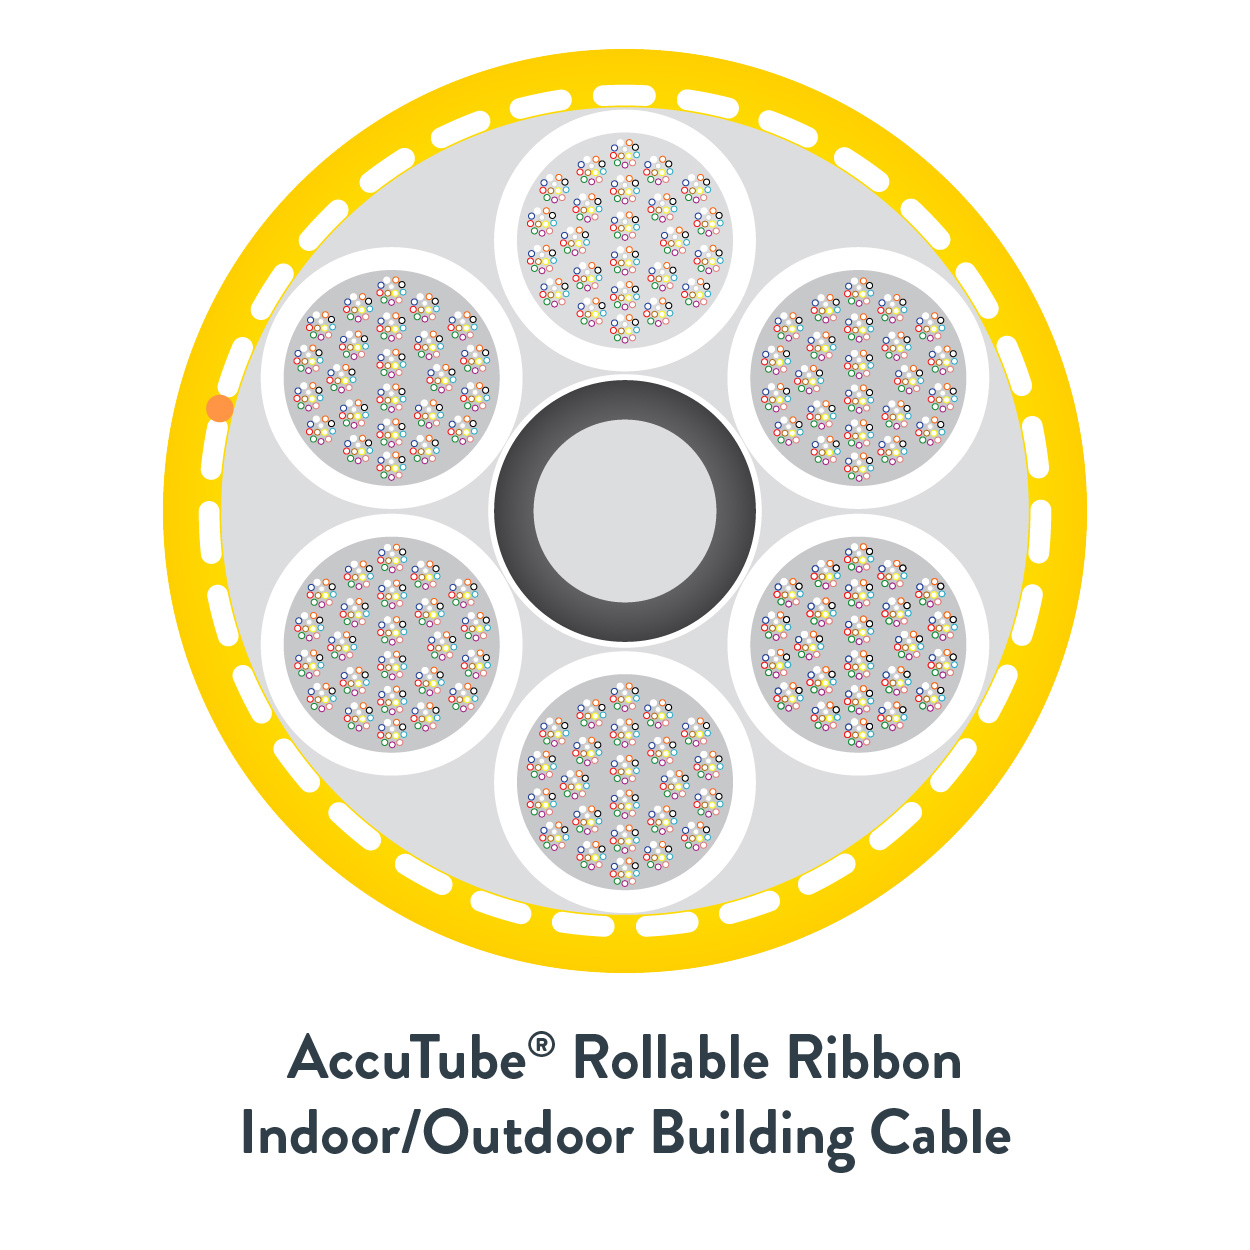 AccuTube_Rollable_Ribbon_Cable